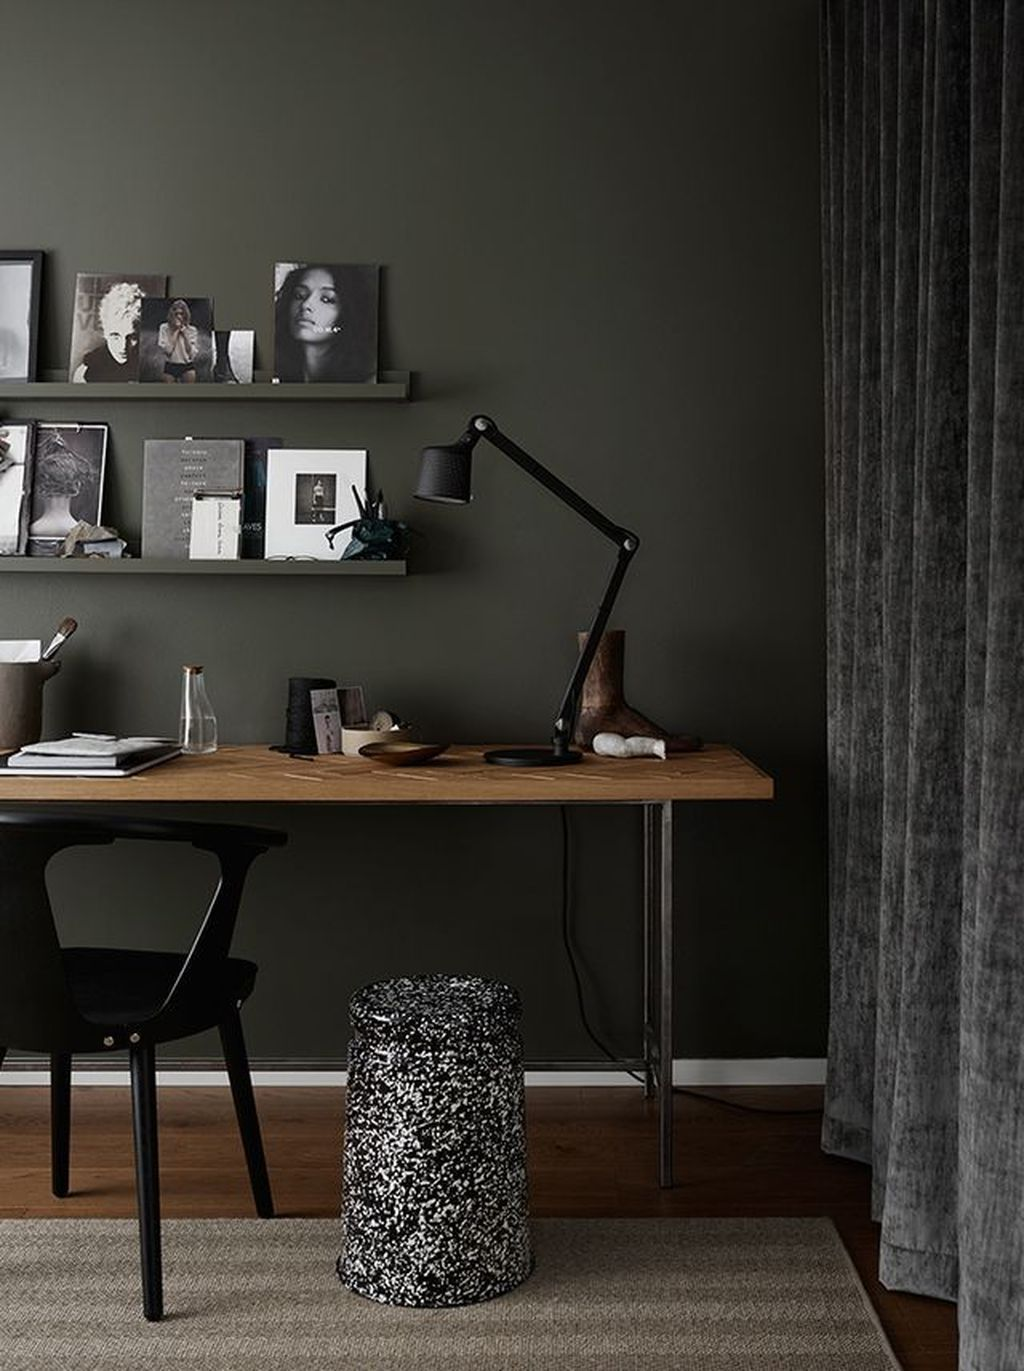 46 Great Home Office Design Ideas With Scandinavian Style Officedesign Home Office Design Office Interior Design Office Interiors